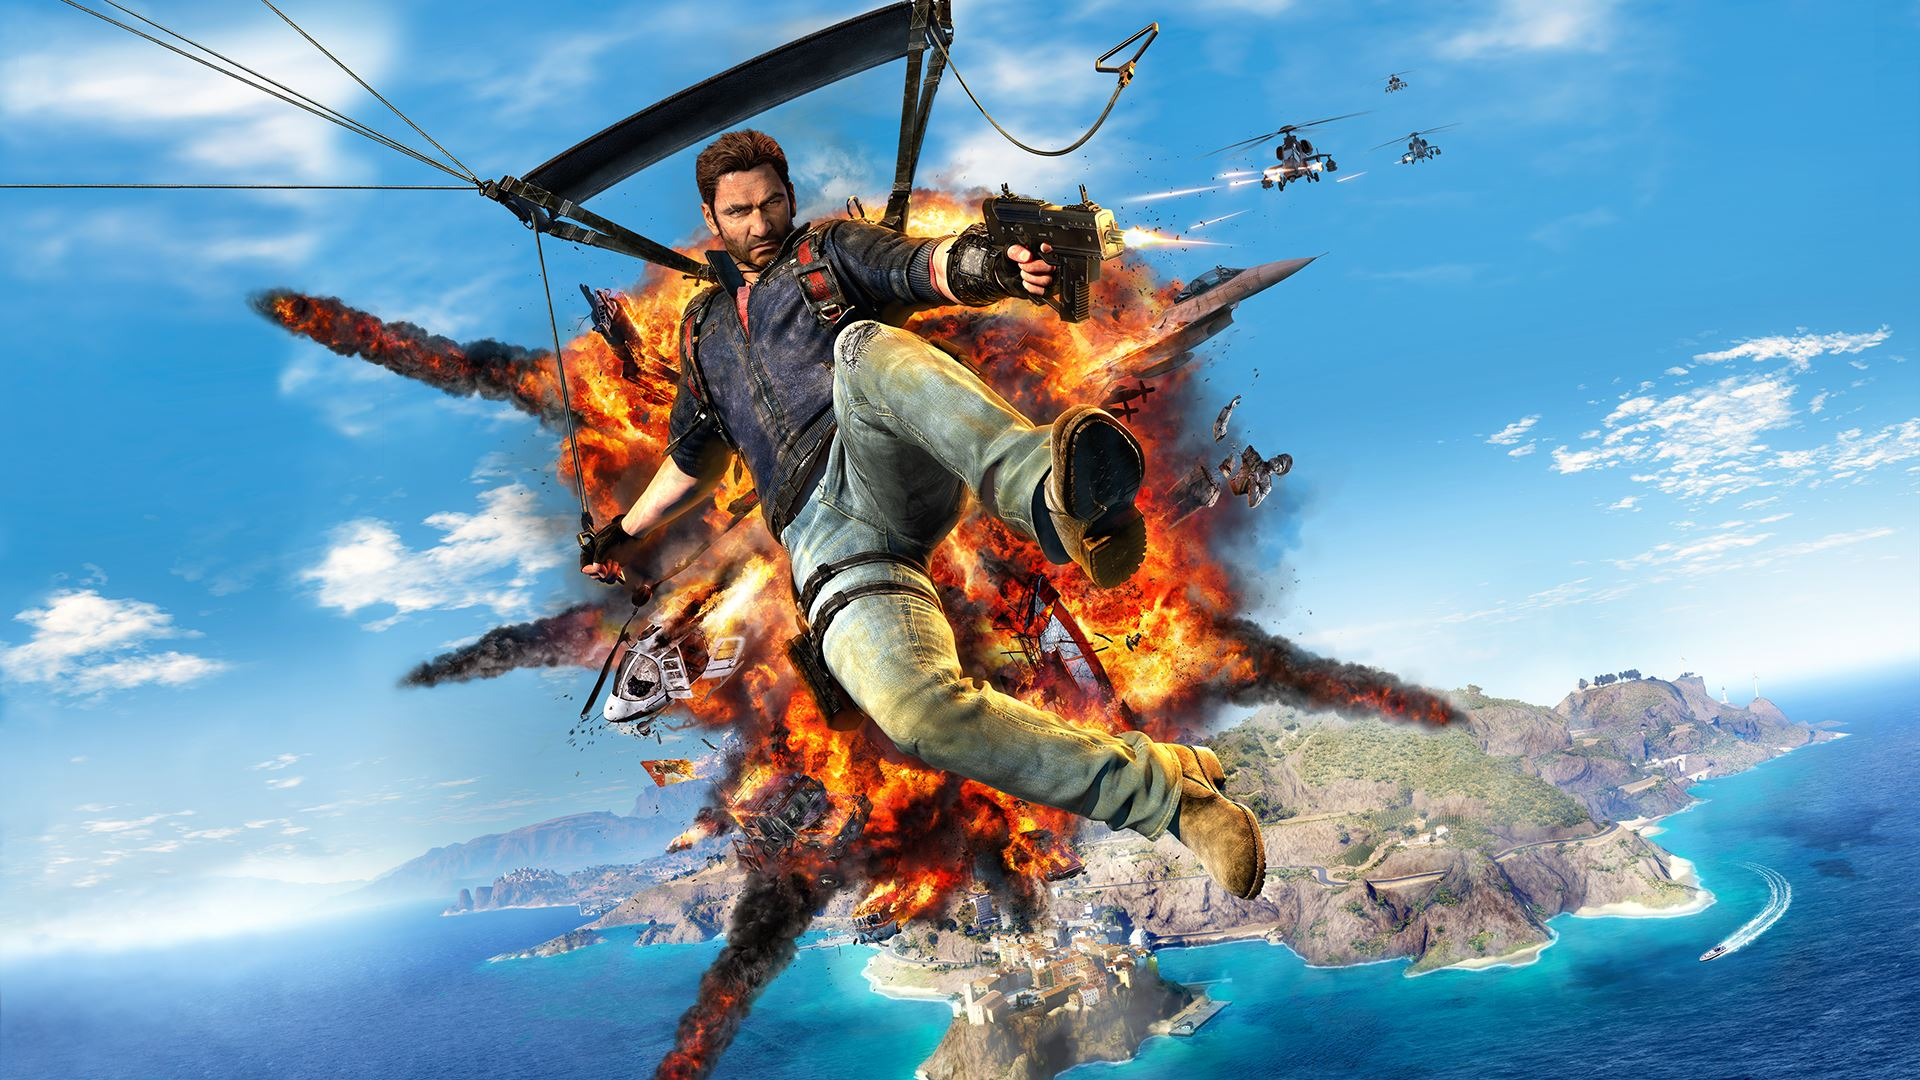 40 Just Cause 3 HD Wallpapers Backgrounds 1920x1080